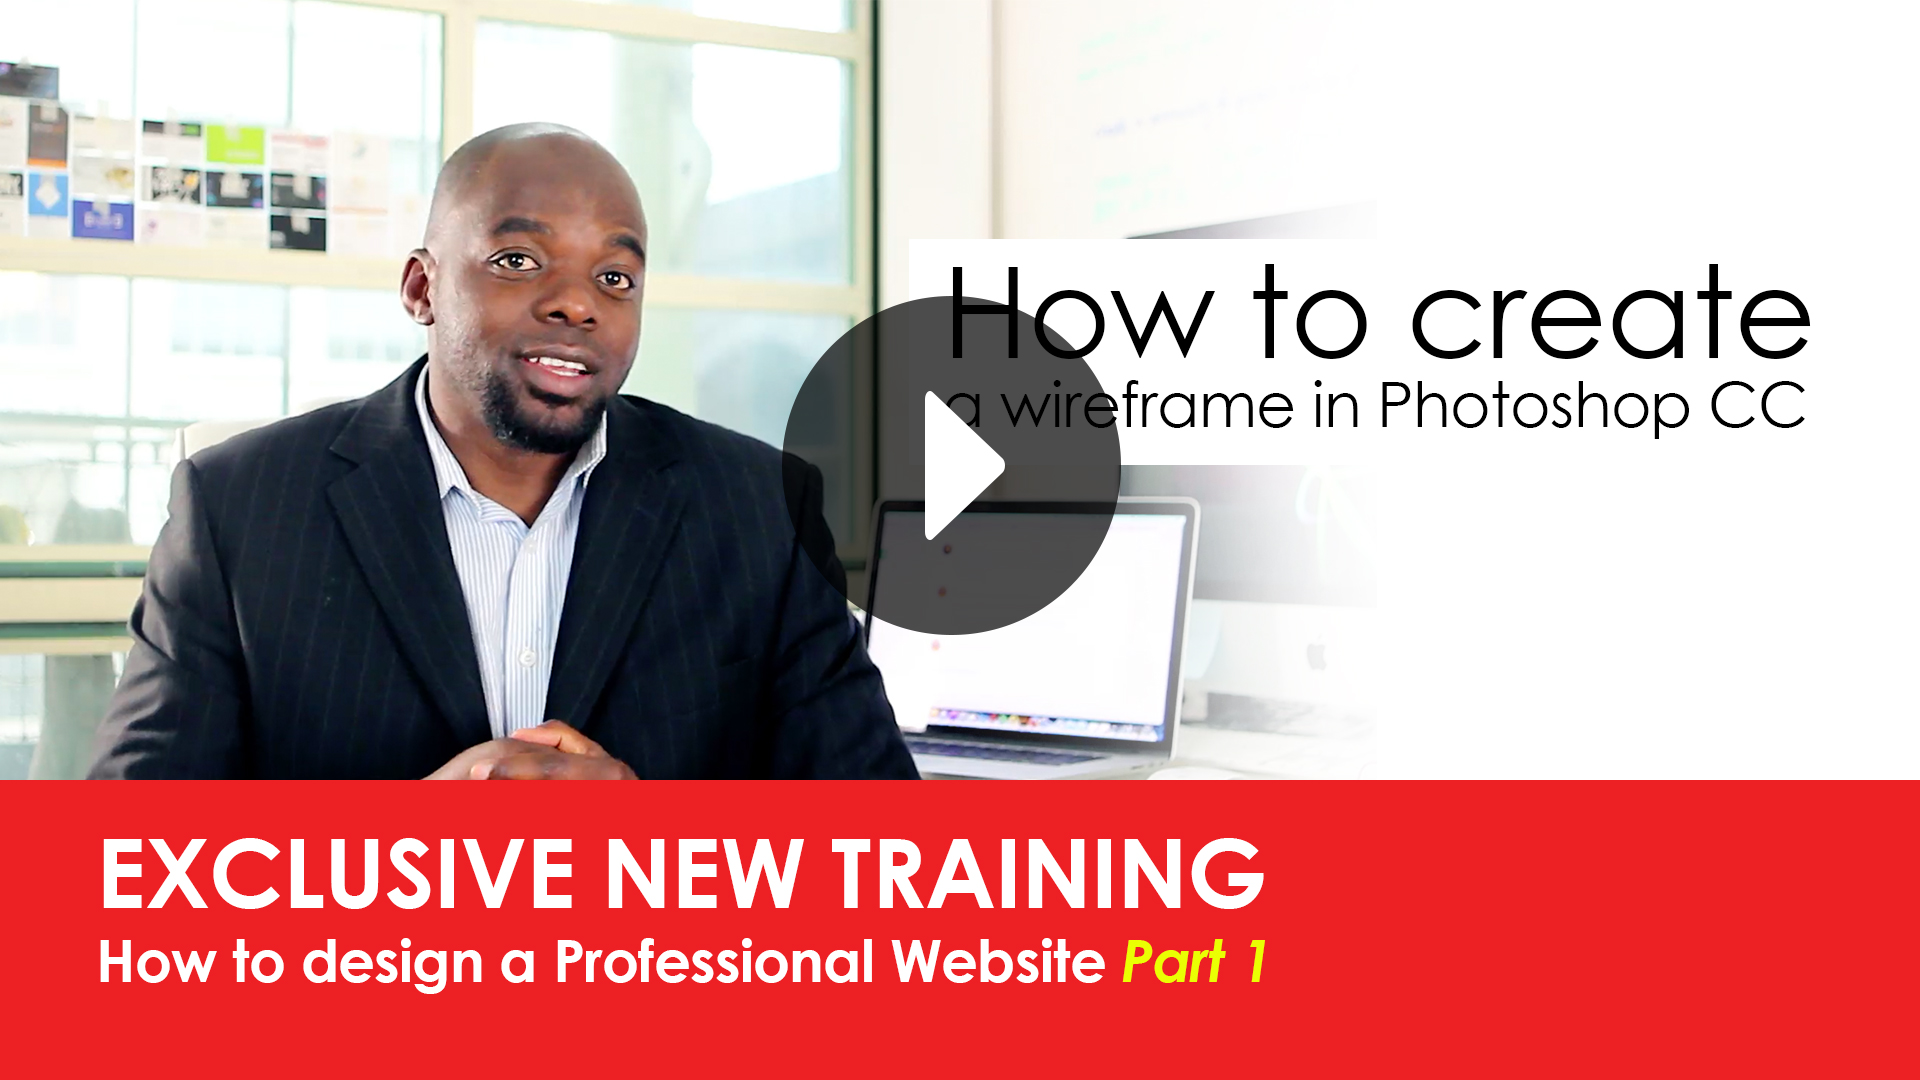 Learn how to Design a Professional Website Part 1